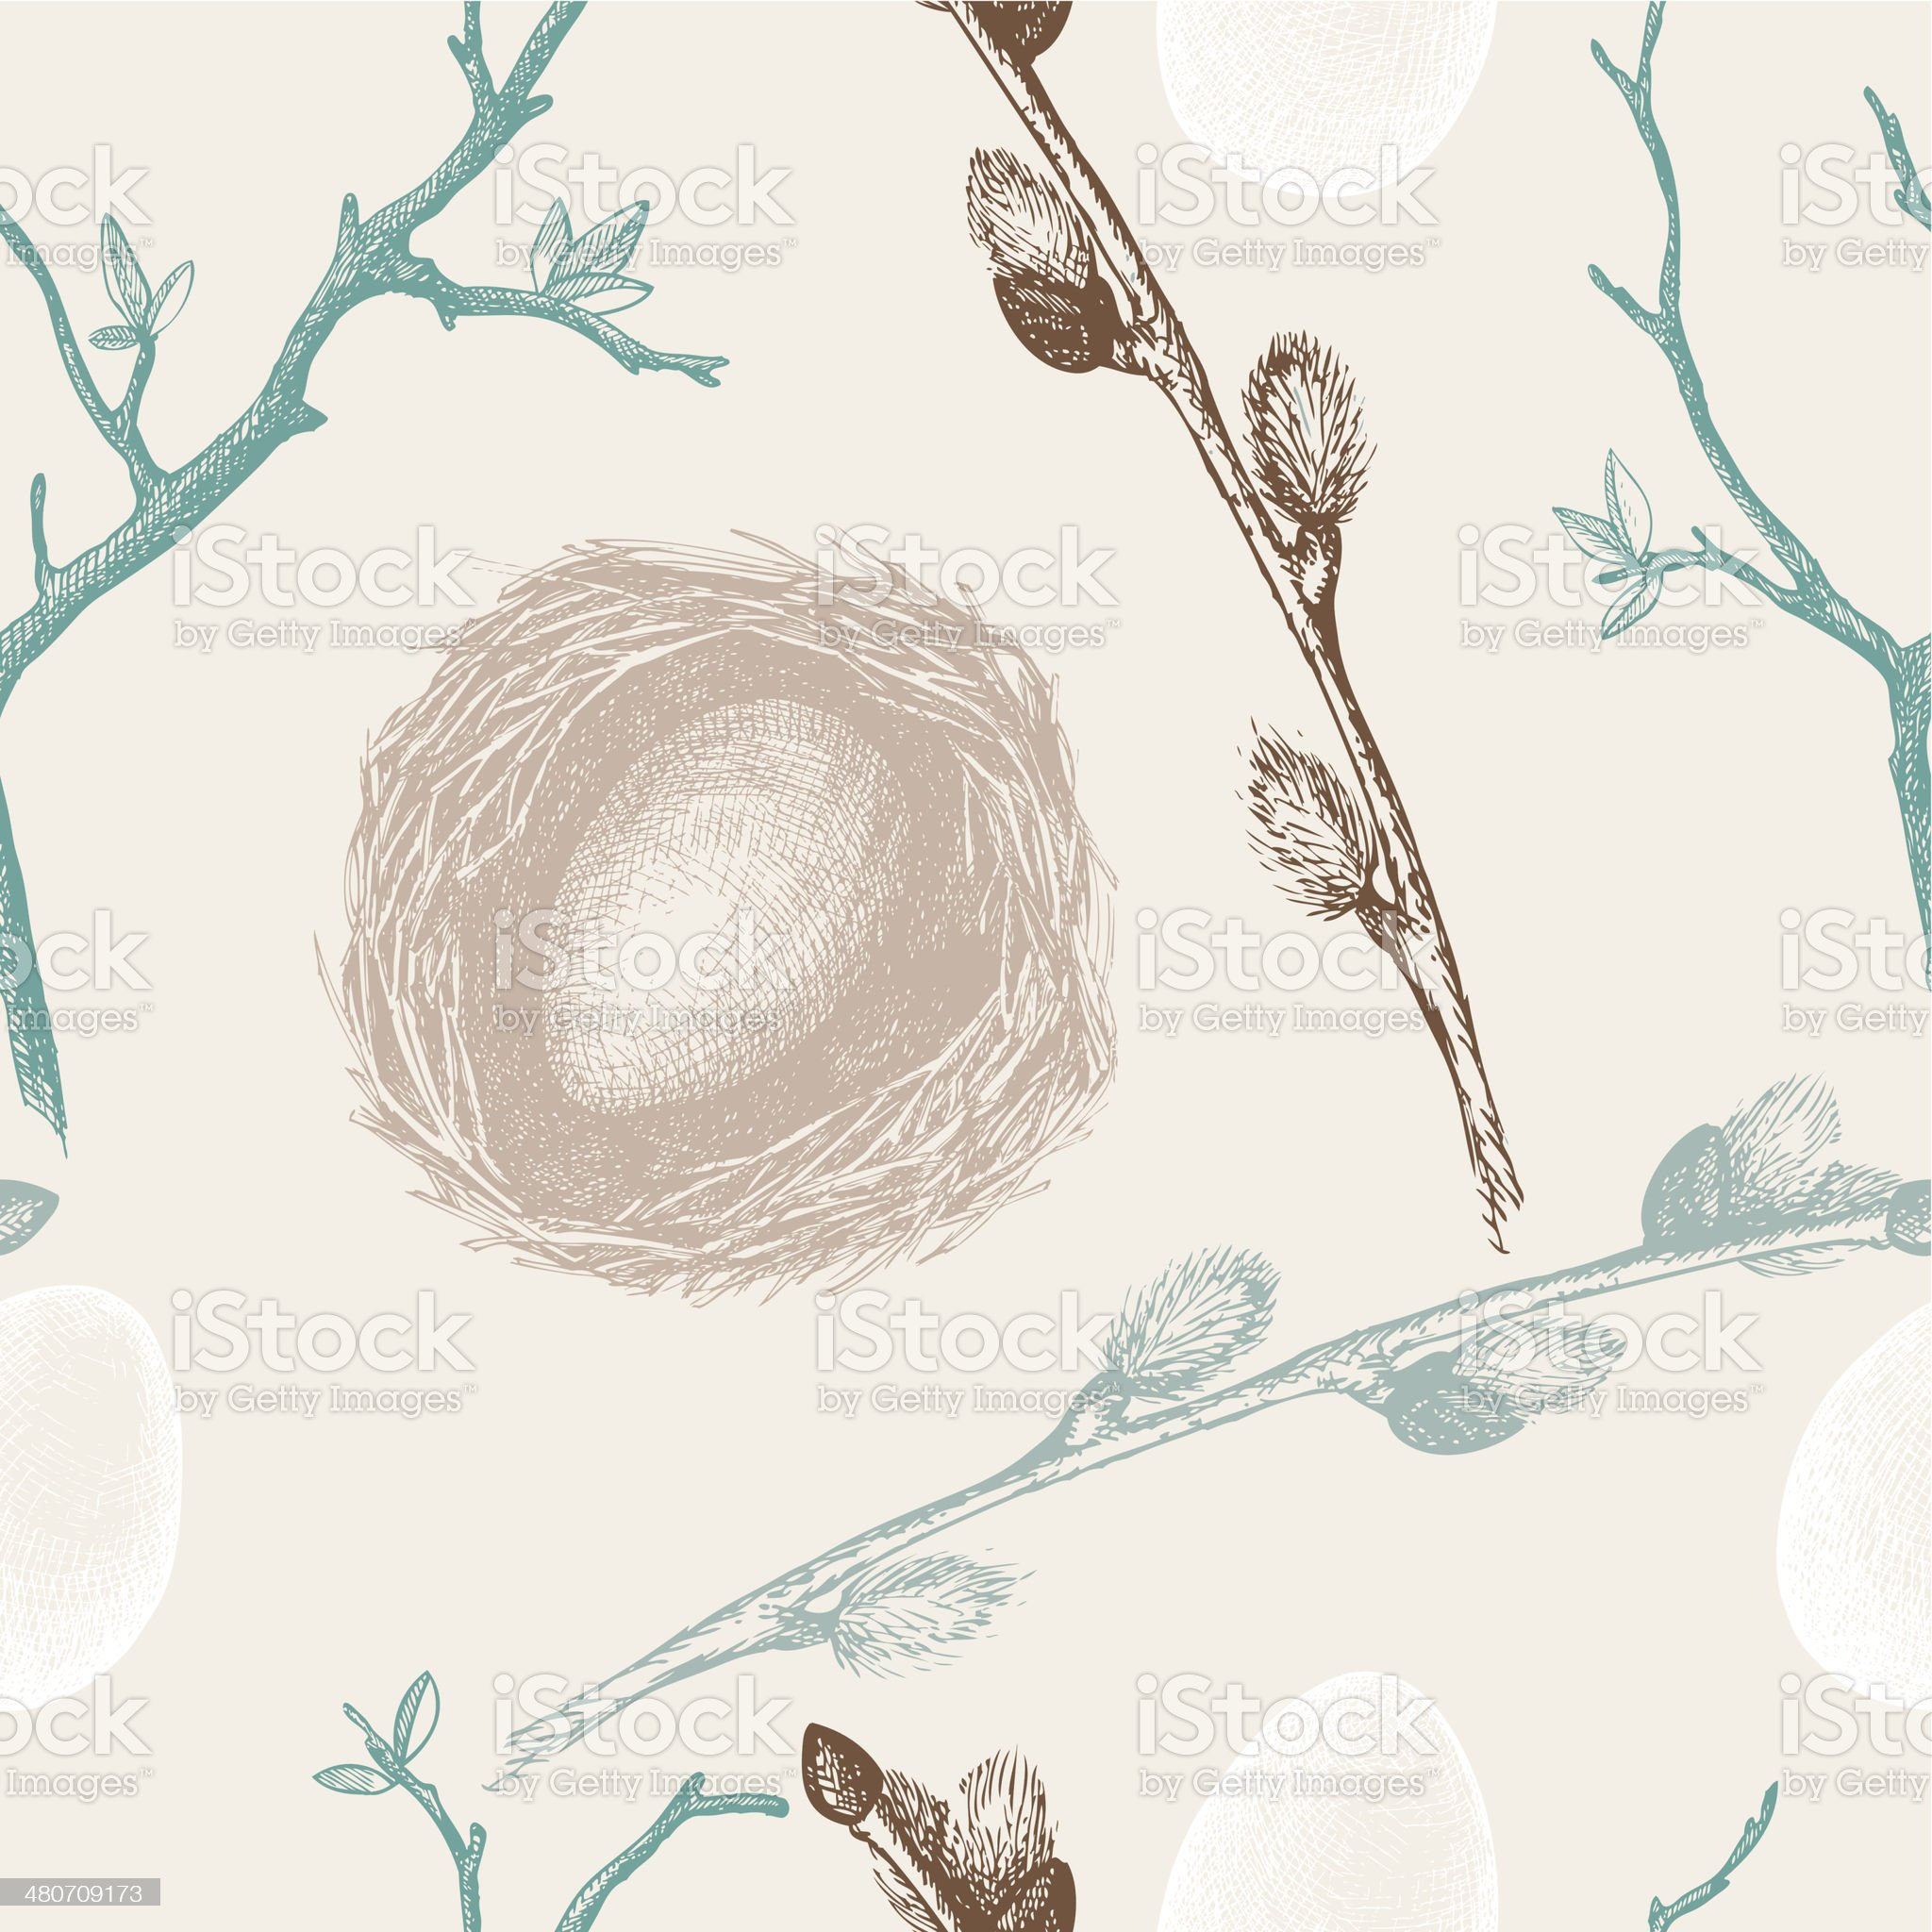 Seamless vintage Easter pattern royalty-free stock vector art